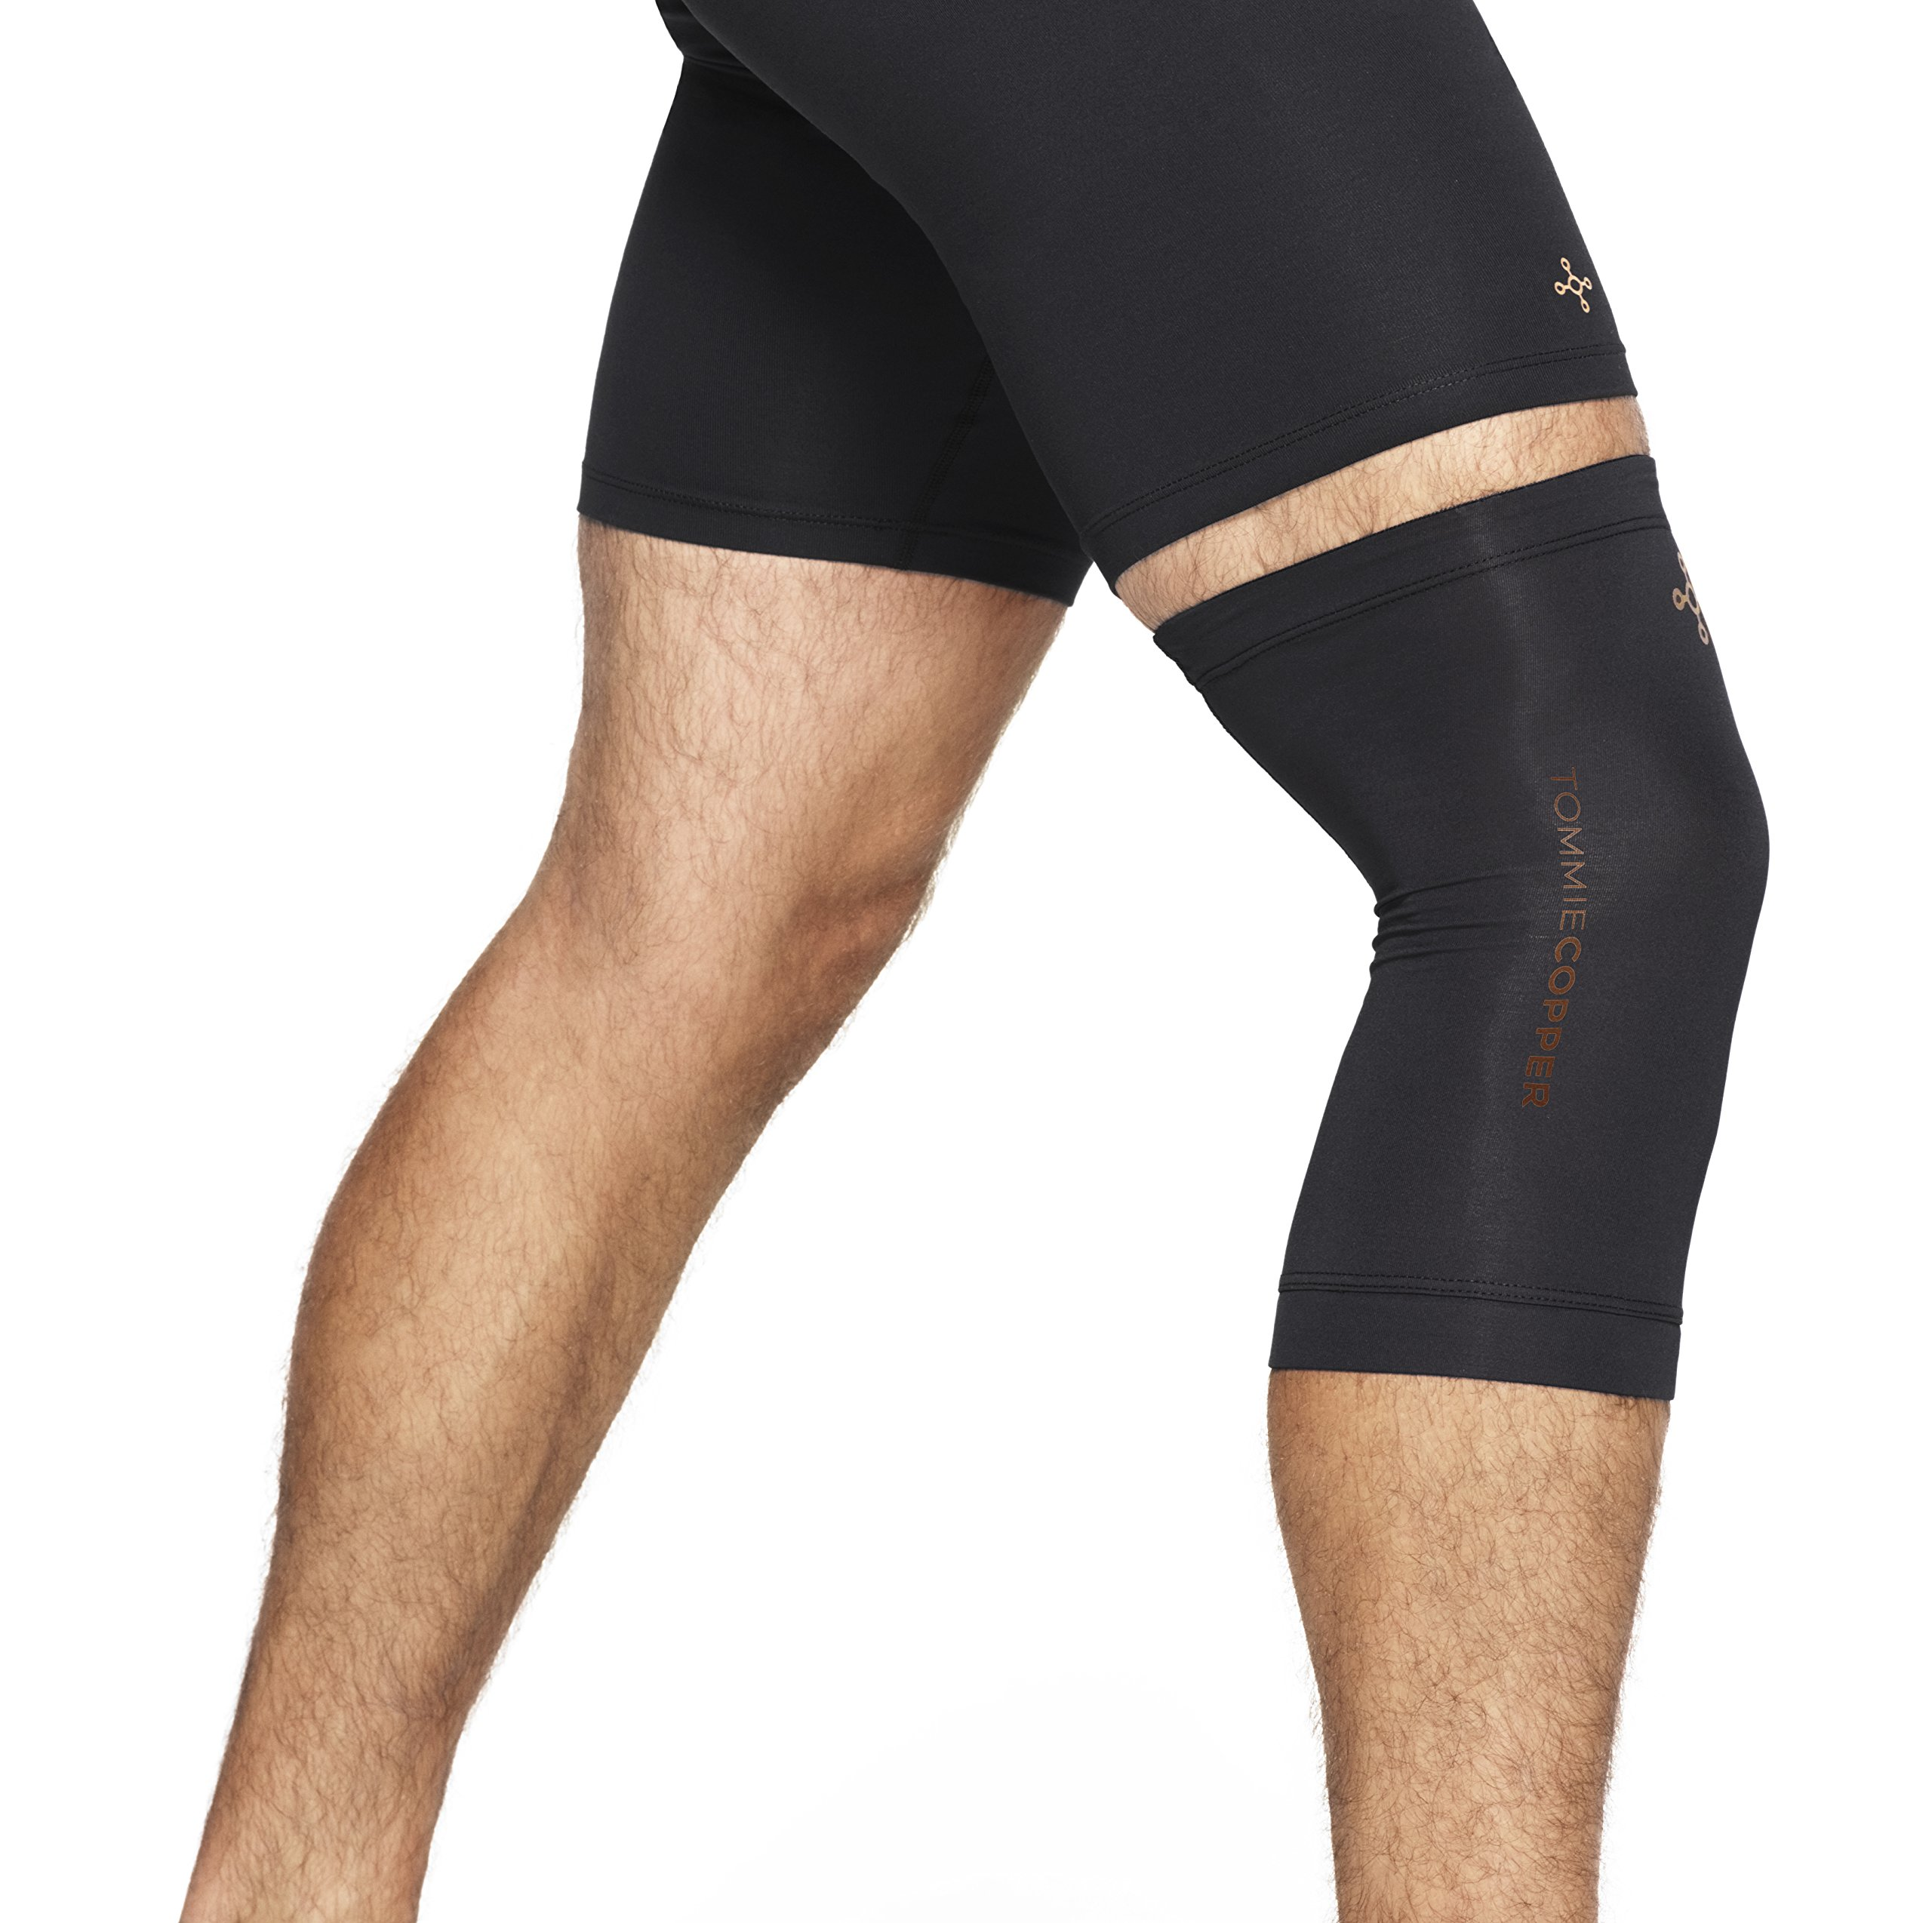 Tommie Copper - Unisex Compression Knee Sleeve - Black - Small by Tommie Copper